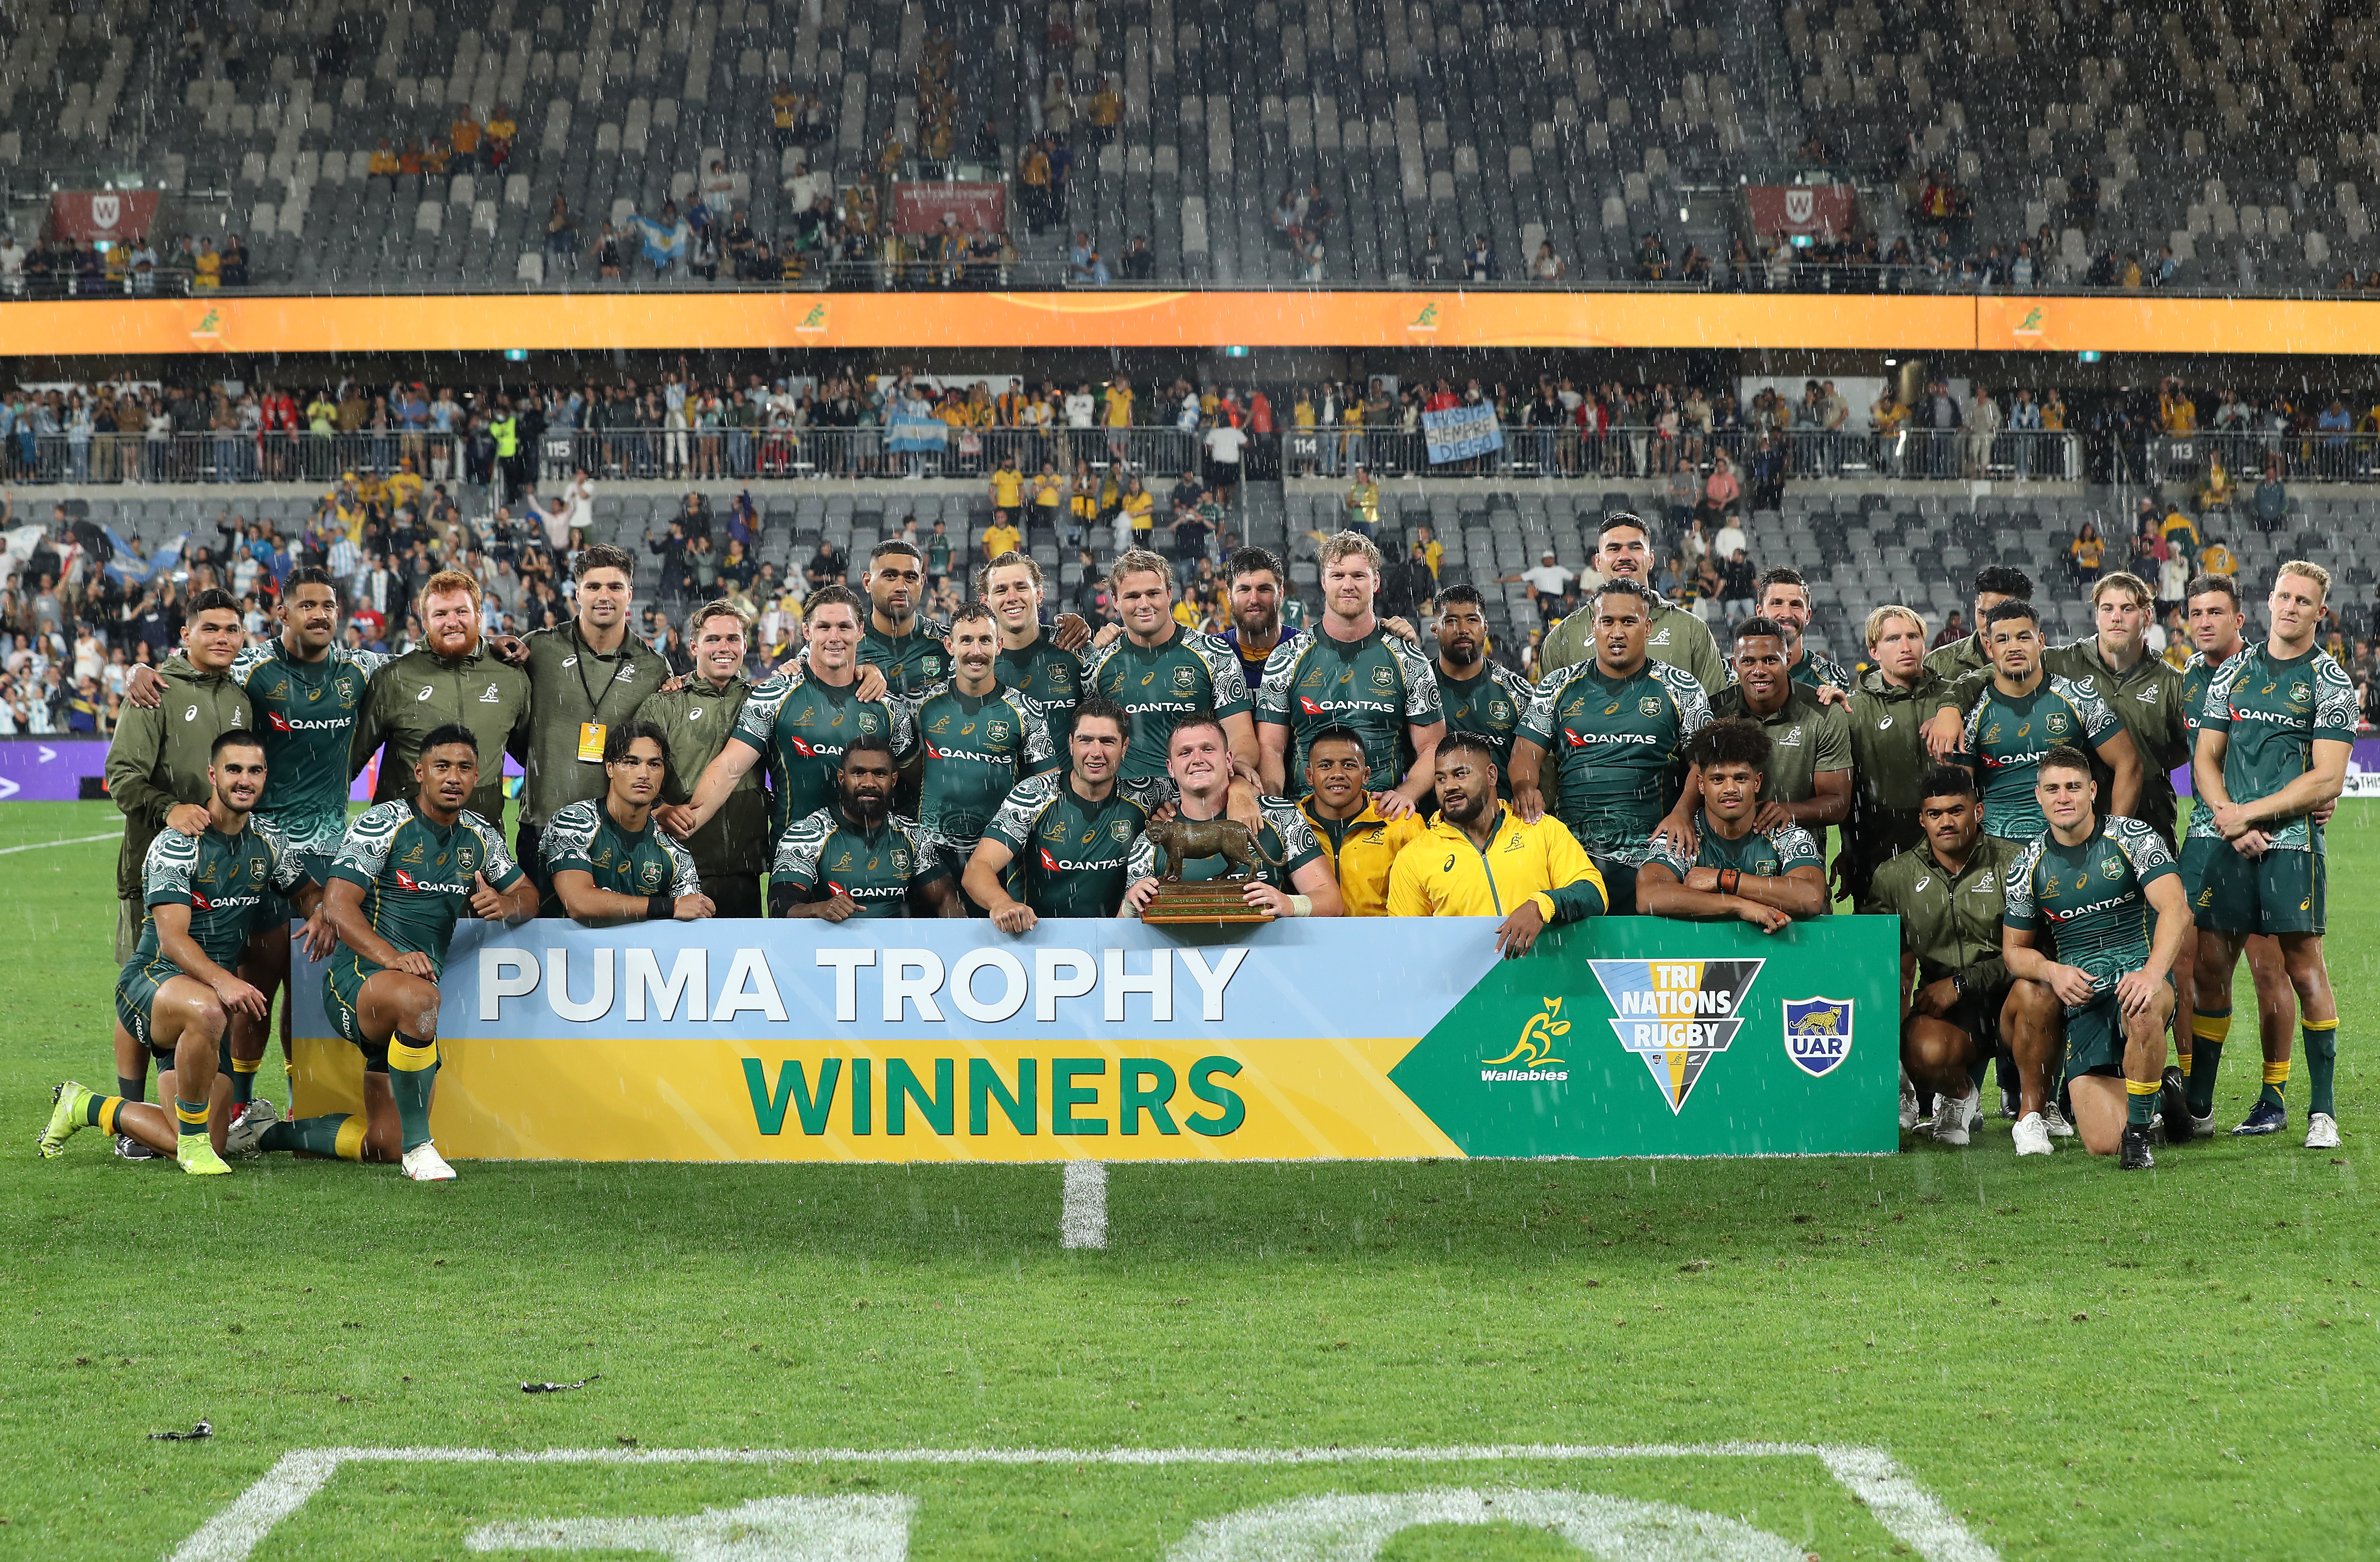 The Wallabies pose with the Puma Trophy.